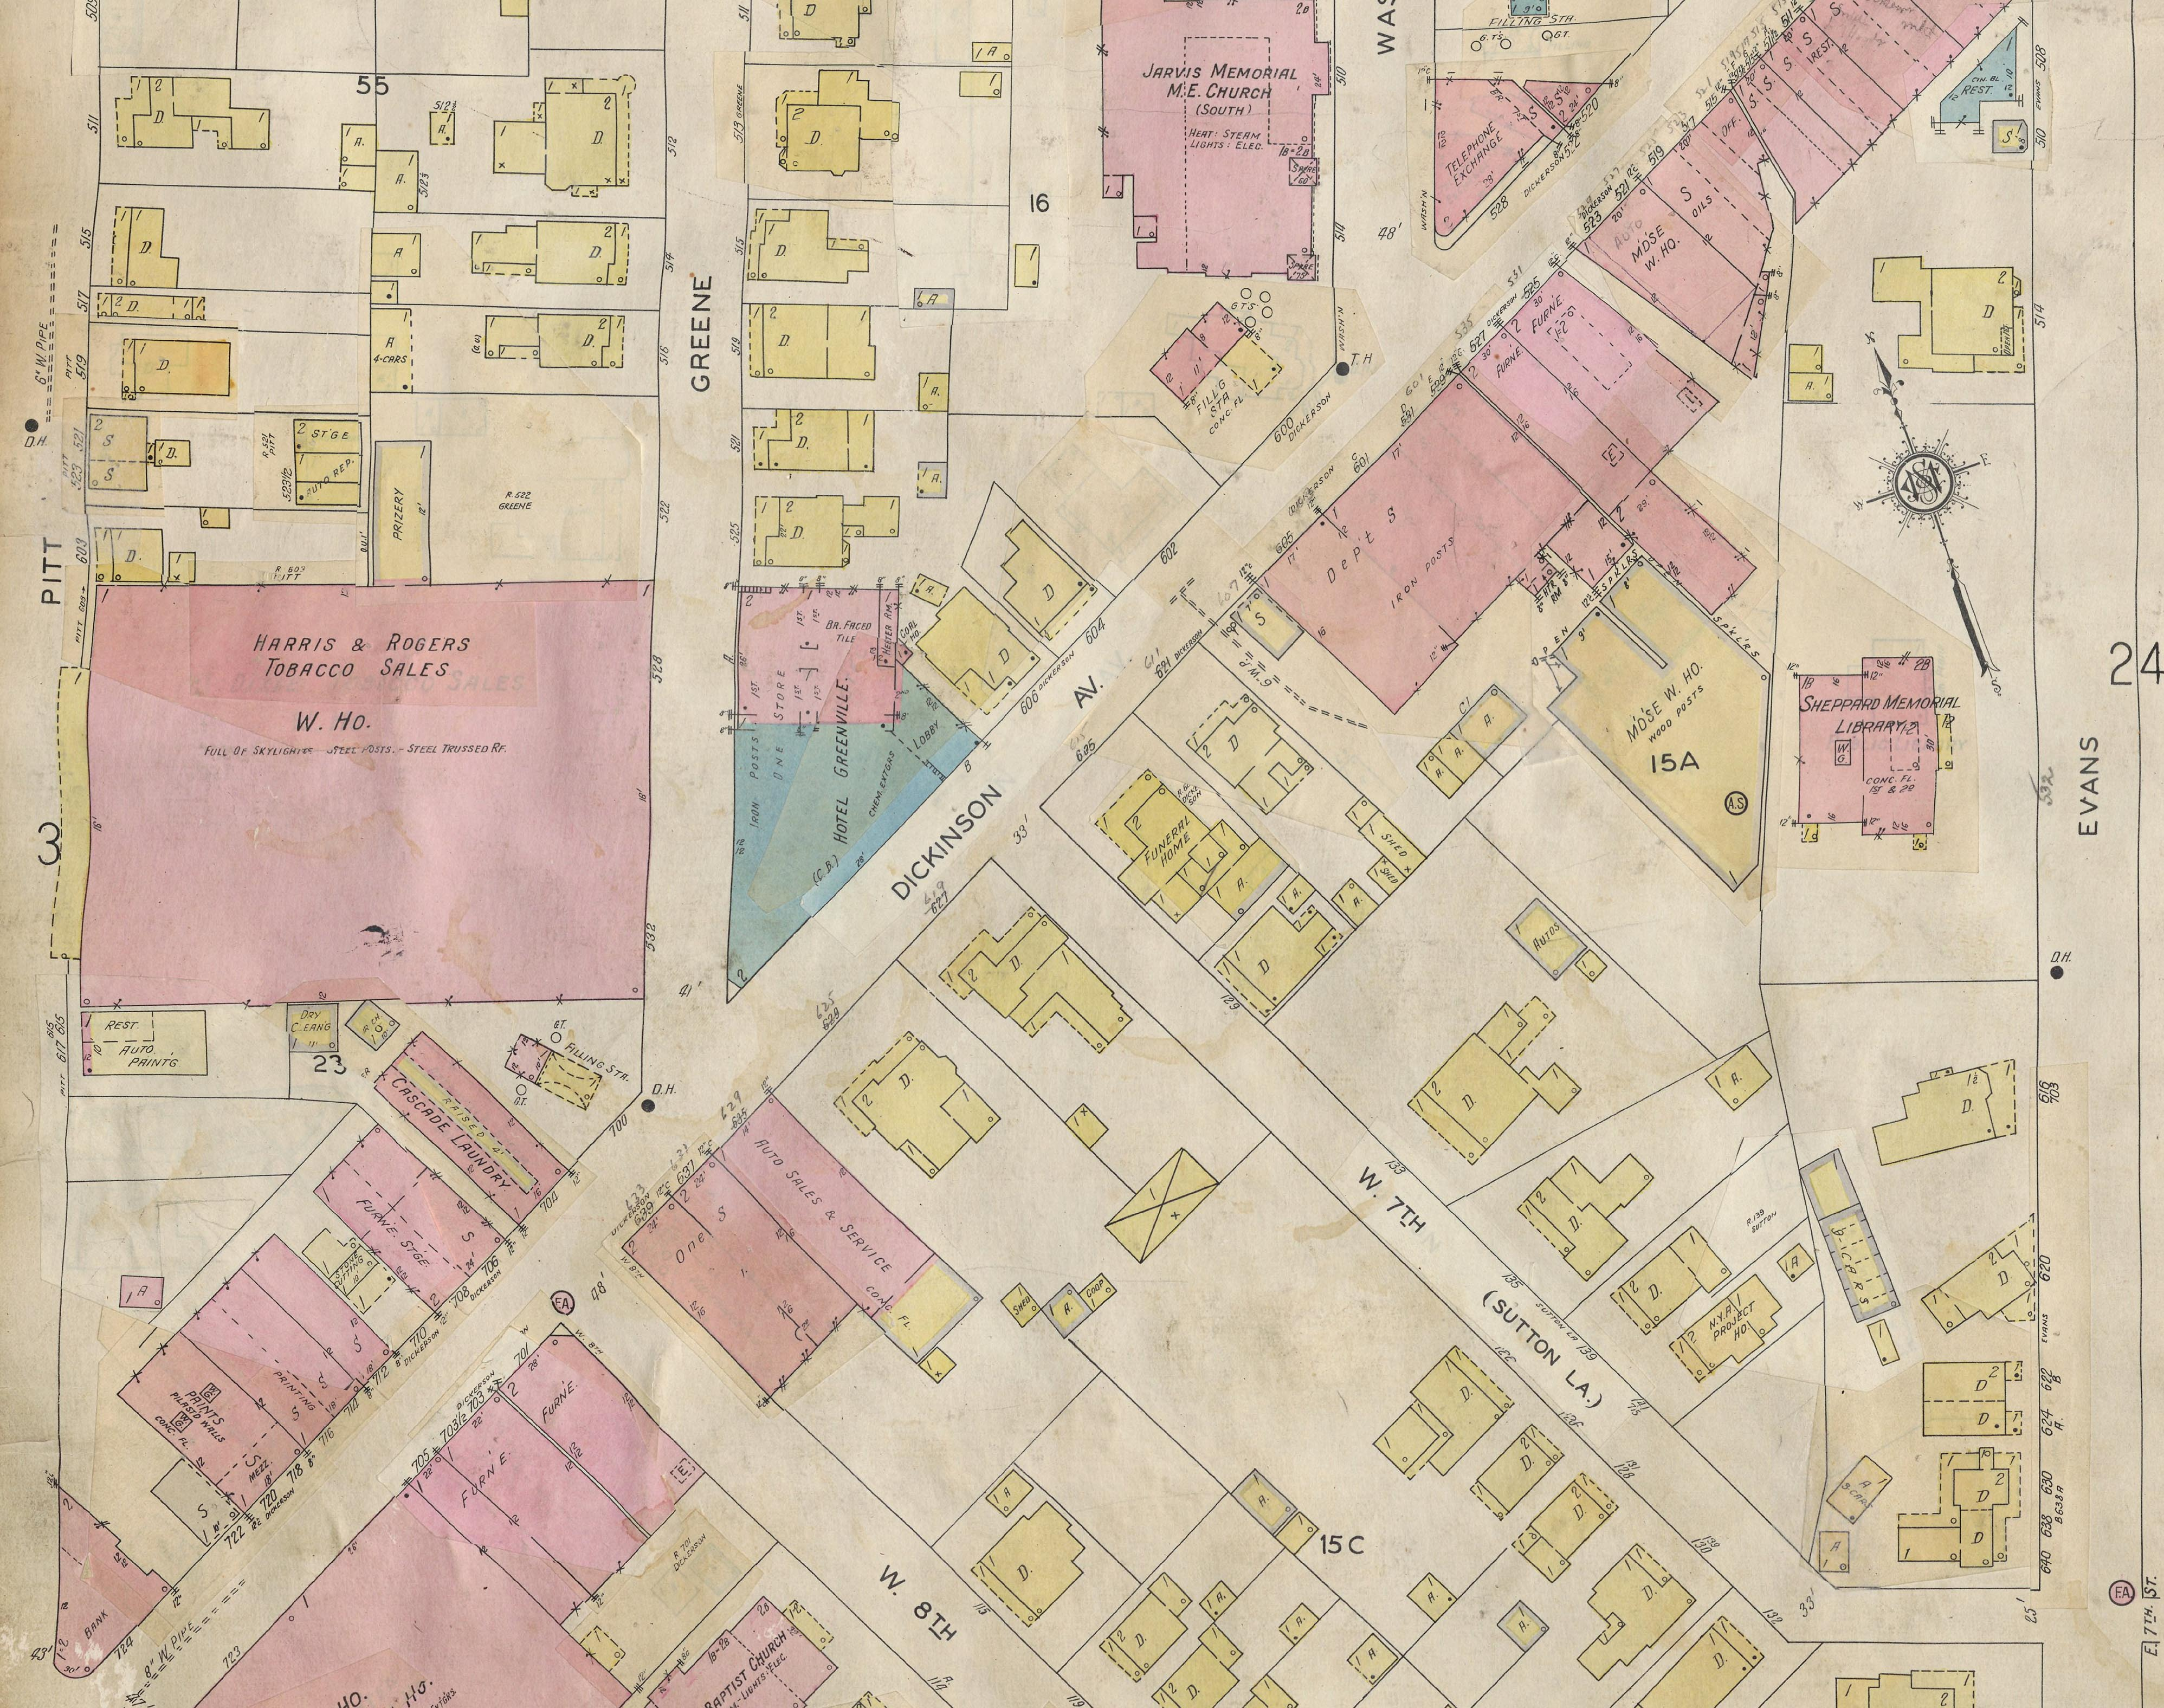 Home Sanborn Fire Insurance Maps of North Carolina Research